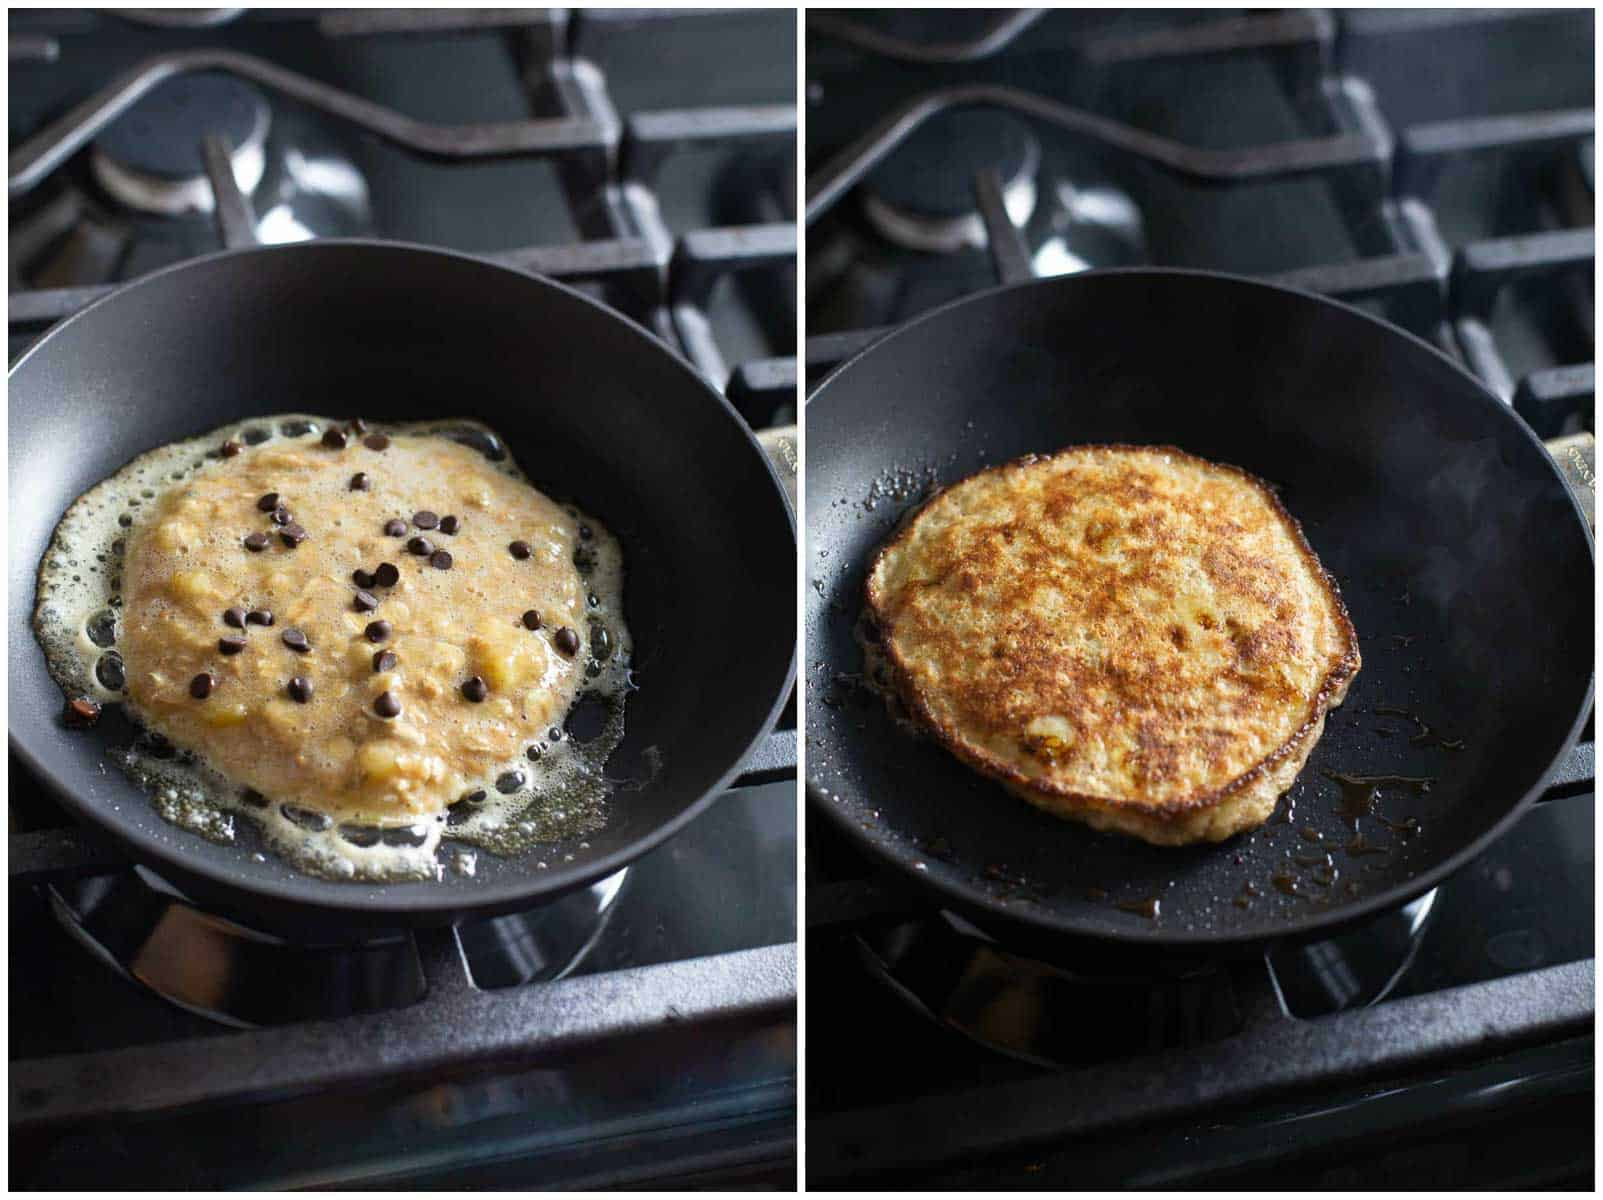 cooking banana pancakes in pan